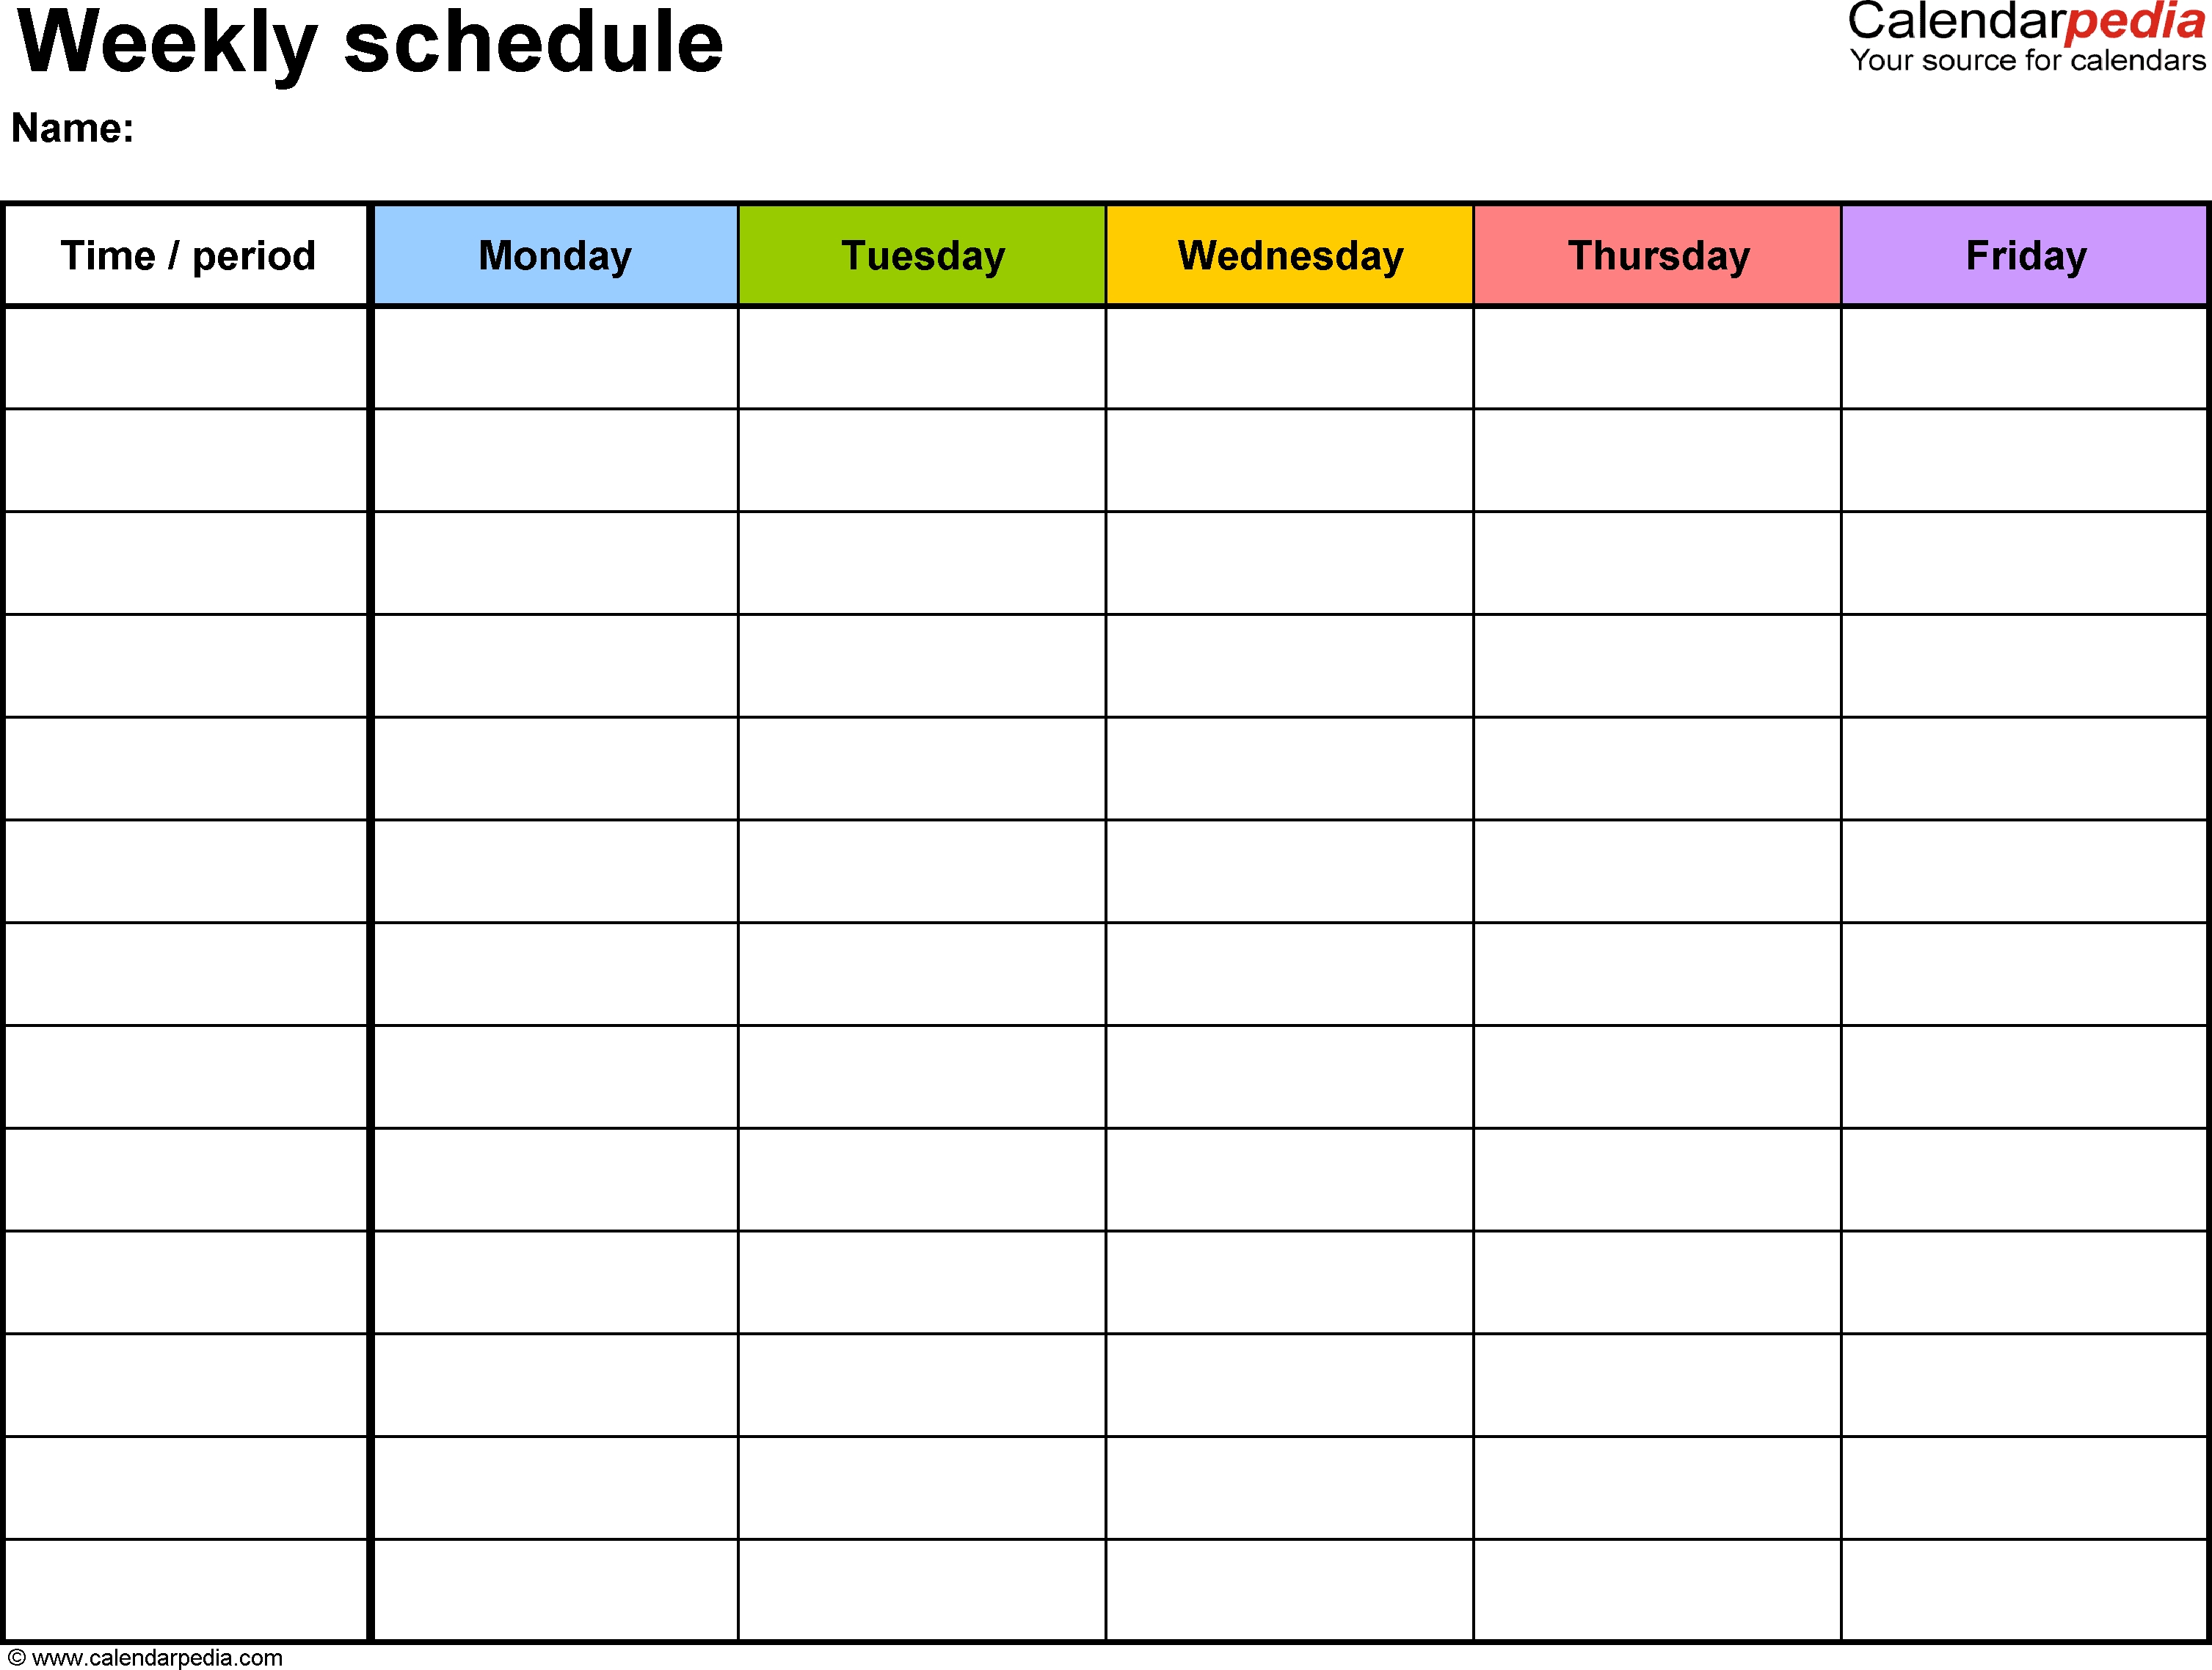 Free Weekly Schedule Templates For Word - 18 Templates in Monday To Friday Schedule Template